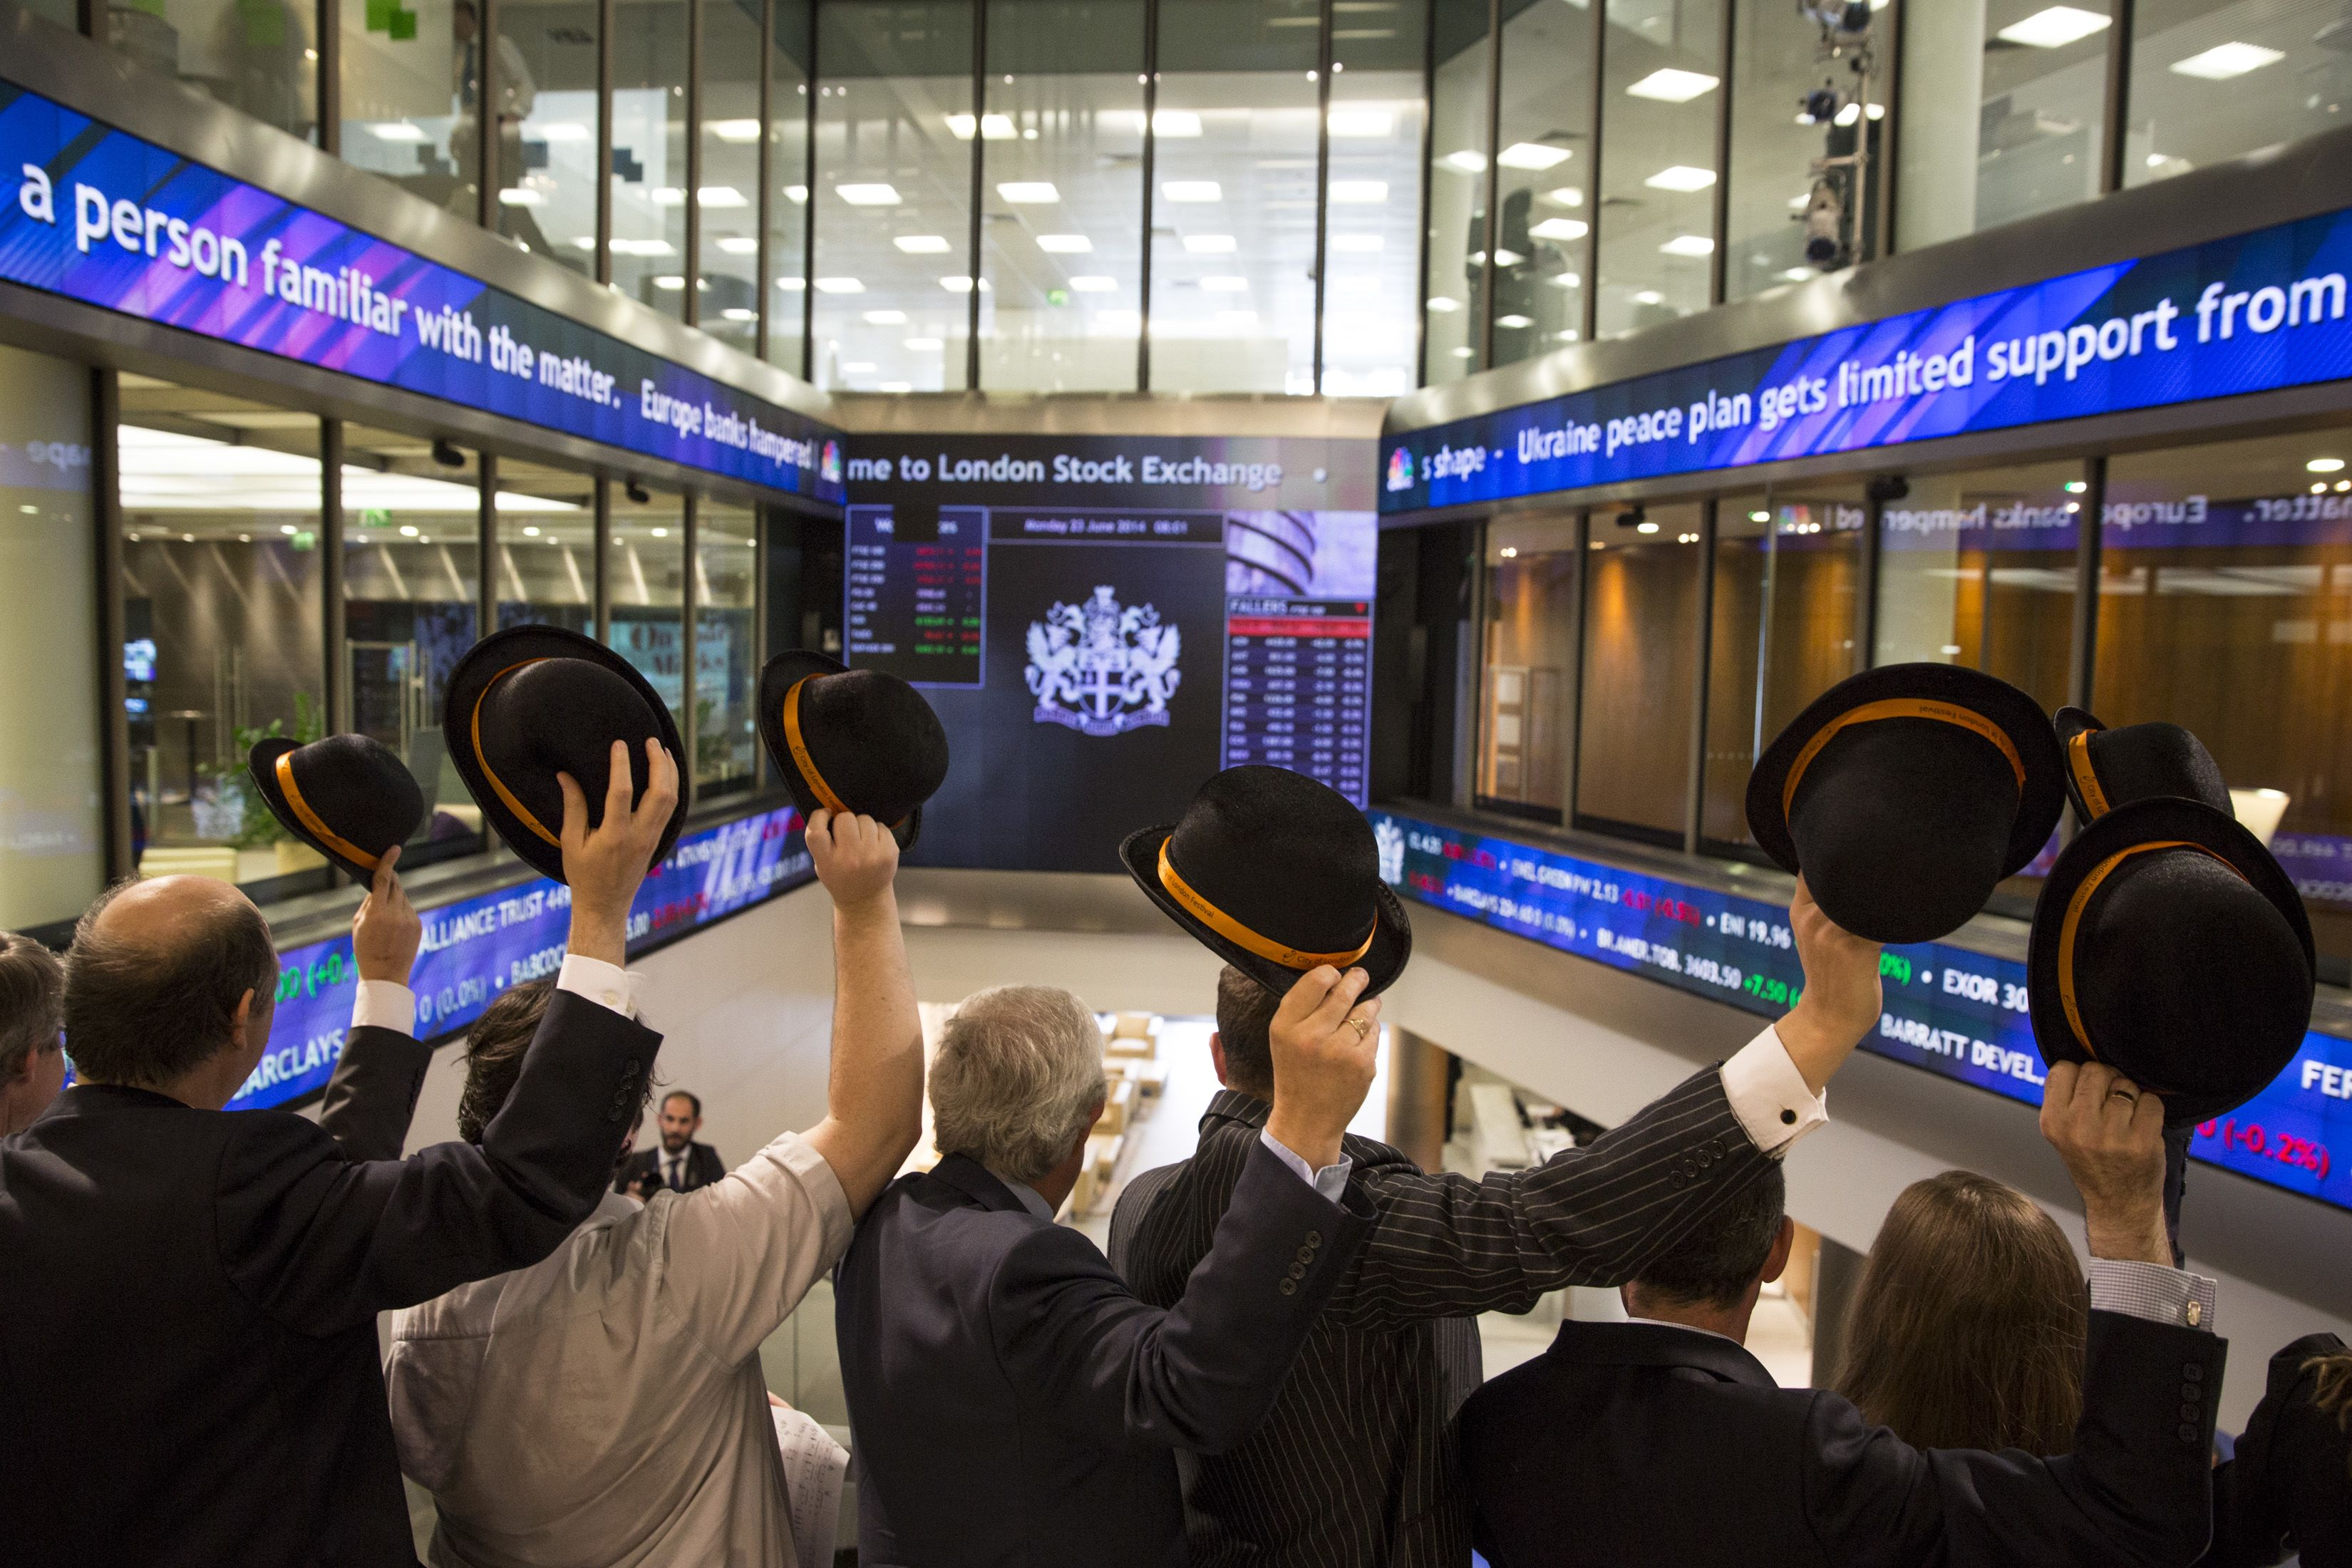 London Stock Exchange CEO on blockchain and cryptocurrency